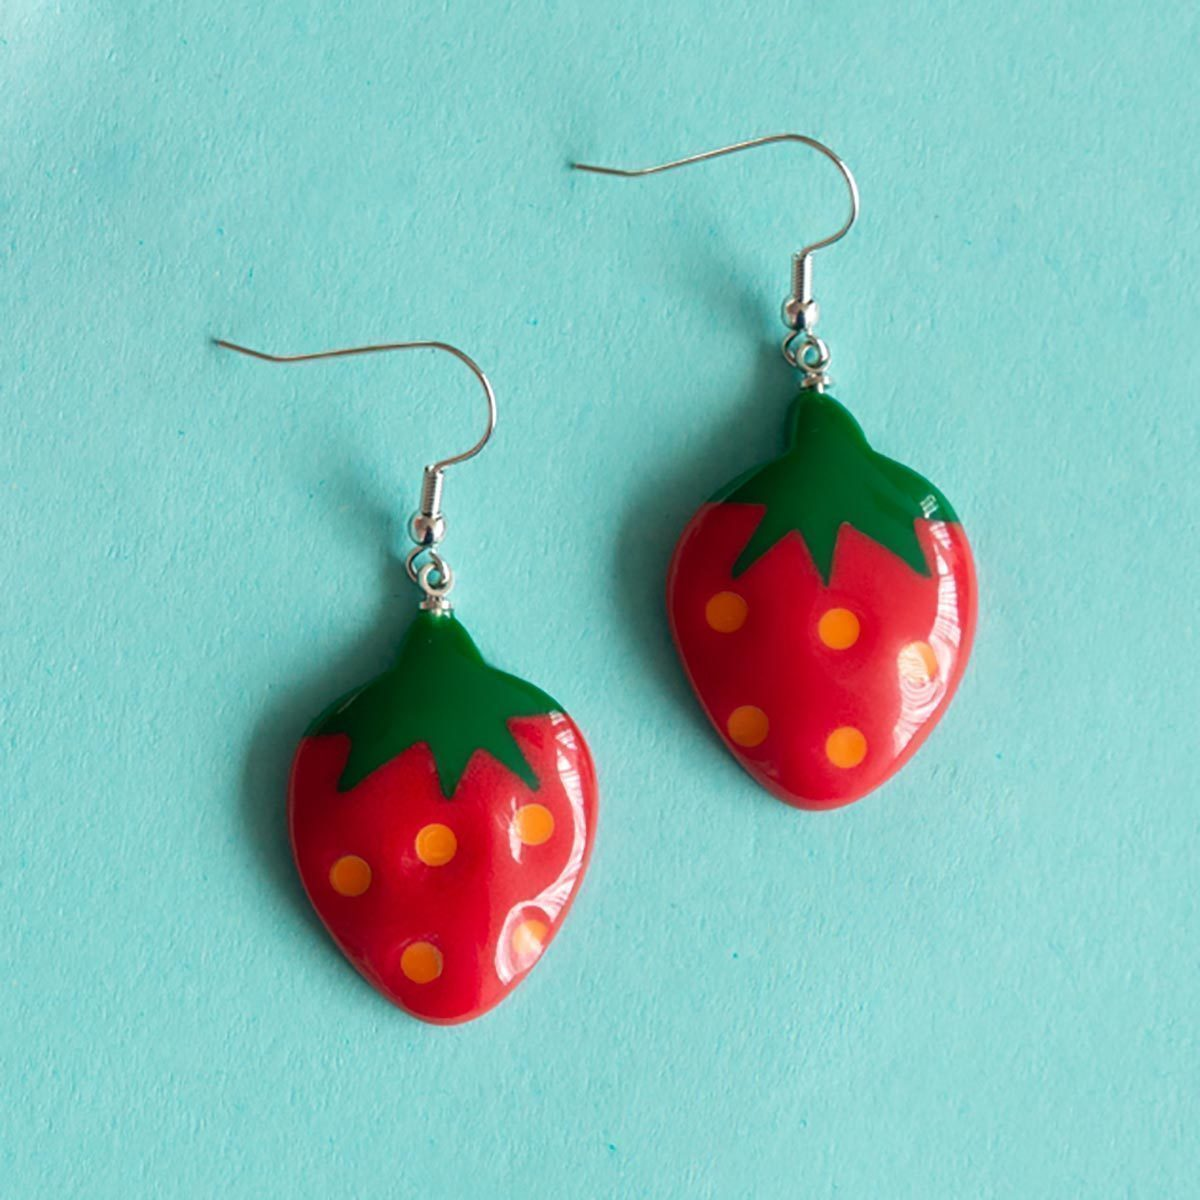 RO1960ER-G-STRAWBERRY-Strawberry-Drop-Earrings-1200x1200.jpg